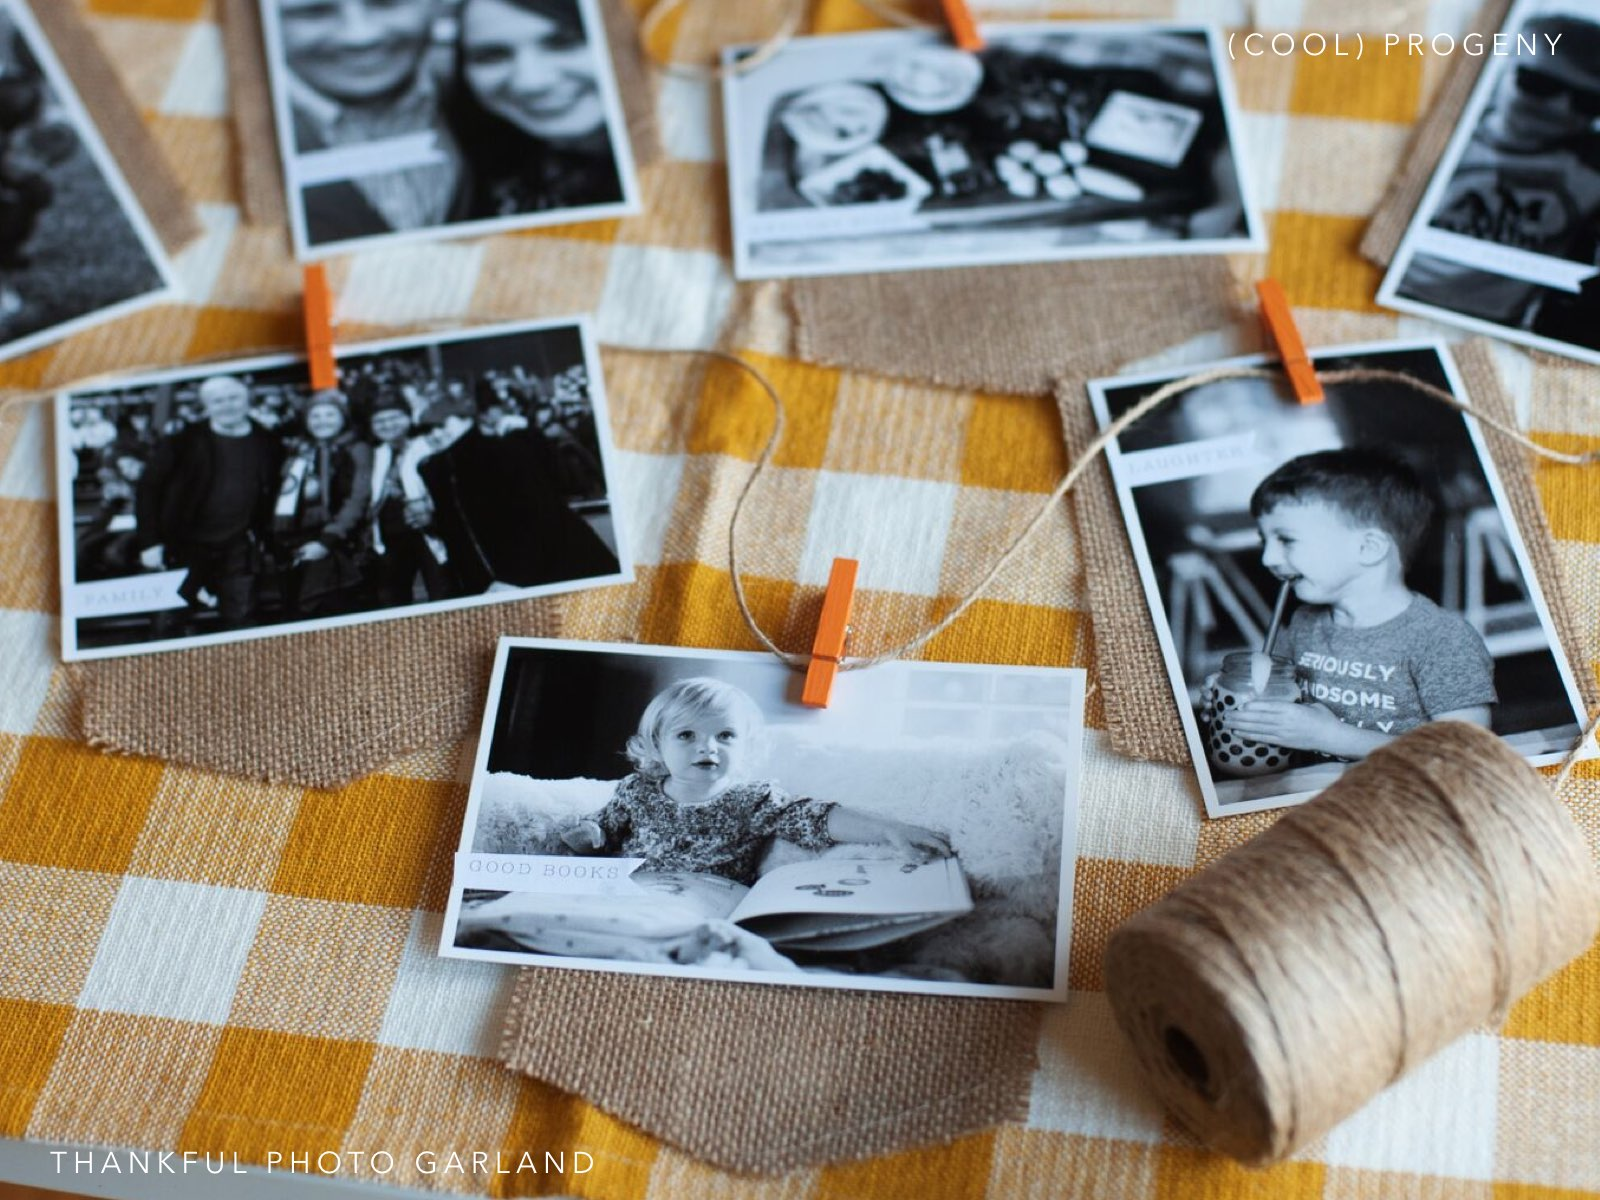 Create a Thankful Photo Garland - (cool) progeny